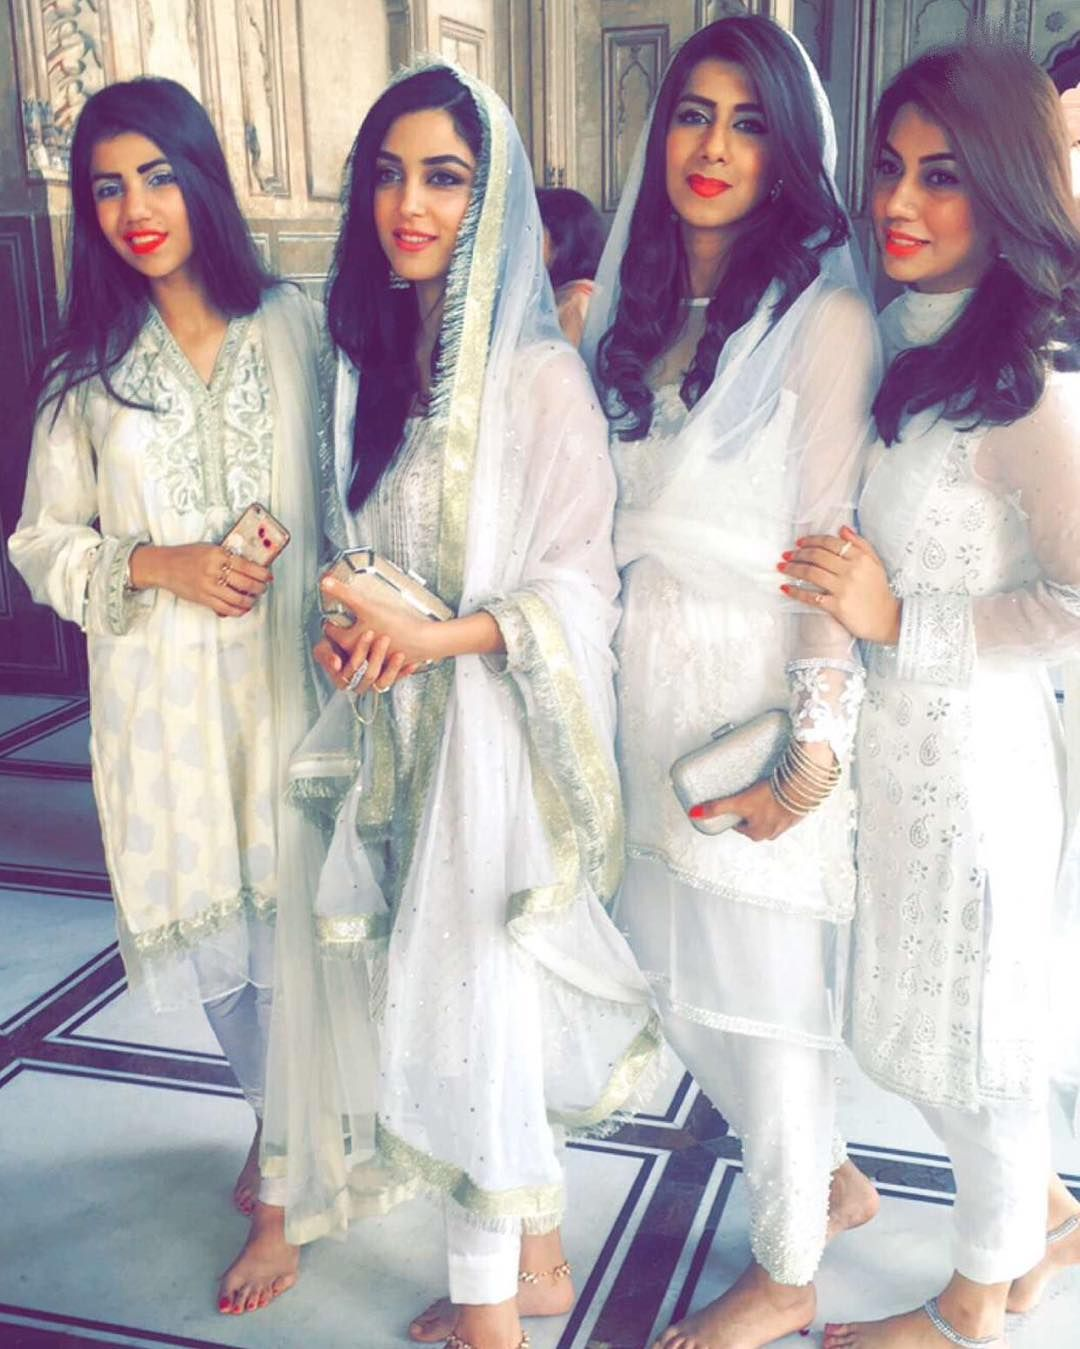 We Love our Girls dressed all White at Wahaj Ali\'s Nikkah Today ...